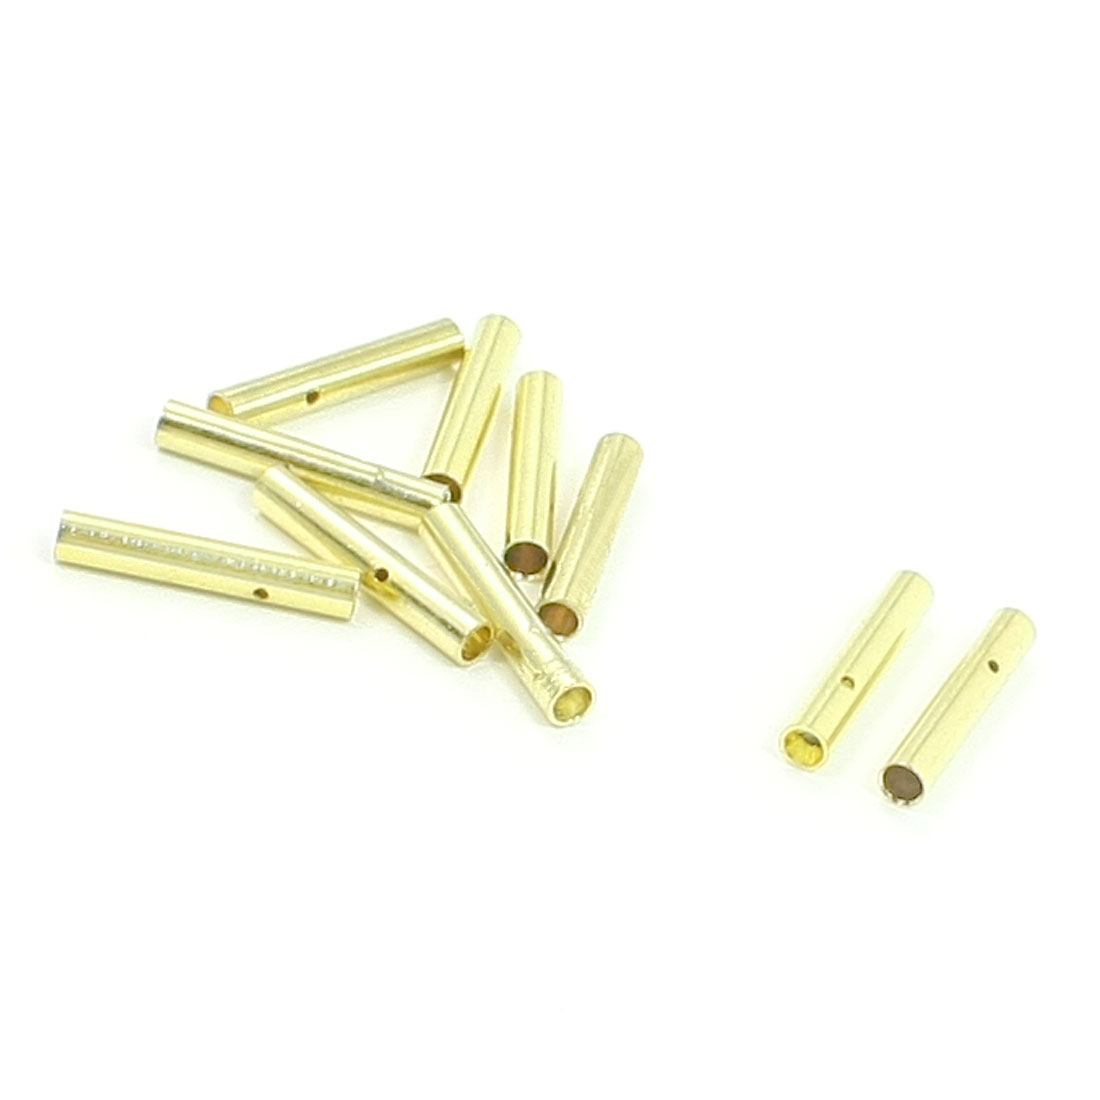 2mm Connector Brushless Motor Banana Female Adapter 10 Pieces